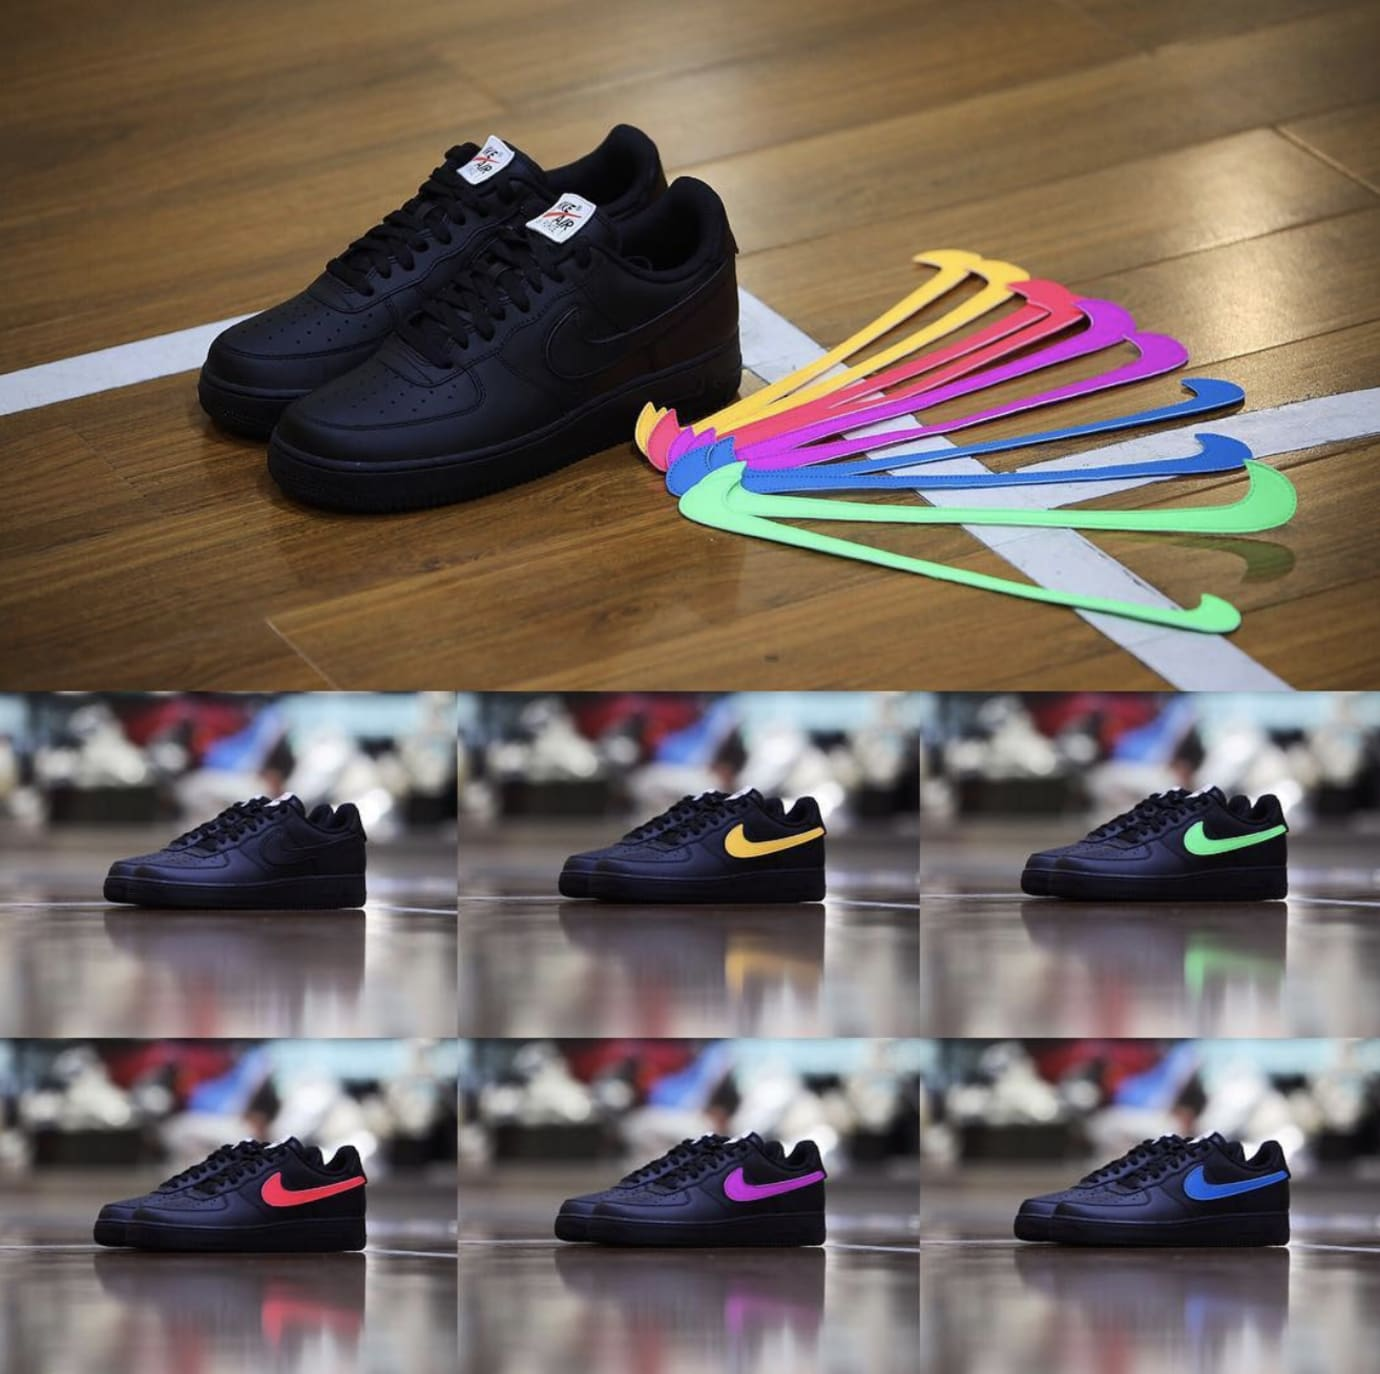 Nike Air Force 1 'All Star/Black' (Swooshes)